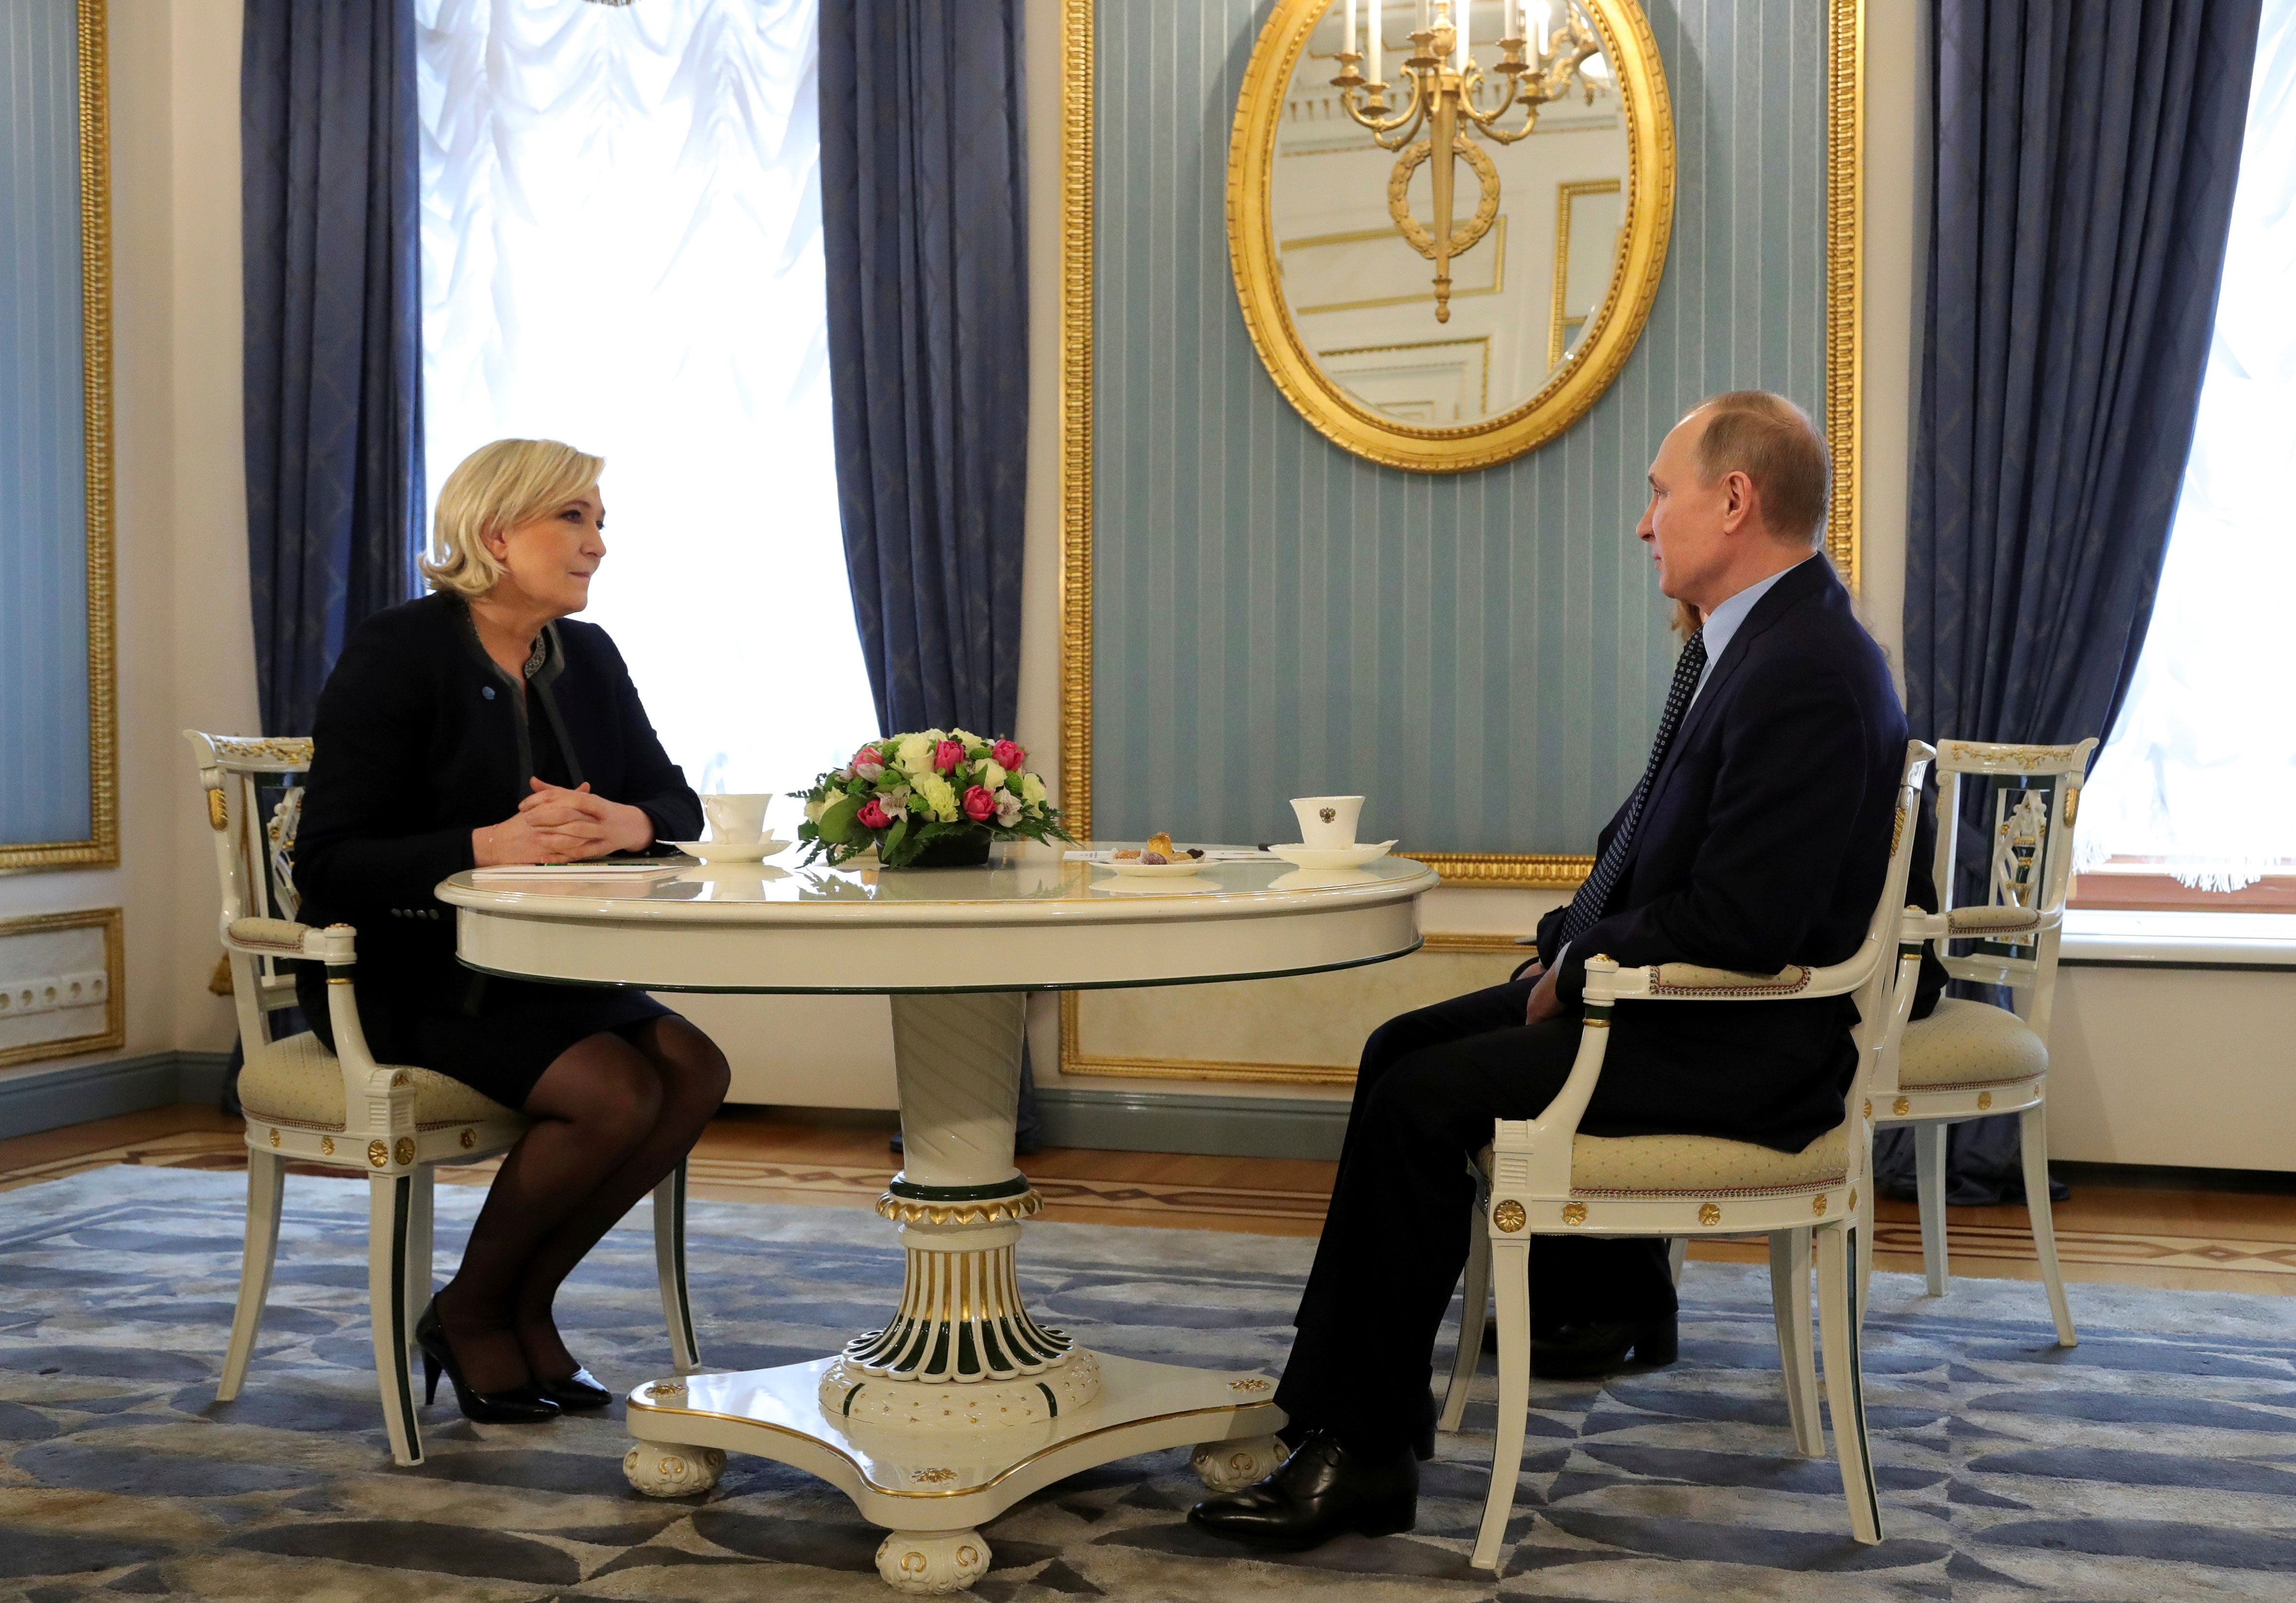 Russian President Vladimir Putin meets with Marine Le Pen, National Front party leader and candidate for the French 2017 presidential election, in Moscow, Russia, March 24, 2017. (Photo: Sputnik/Reuters/Newscom)